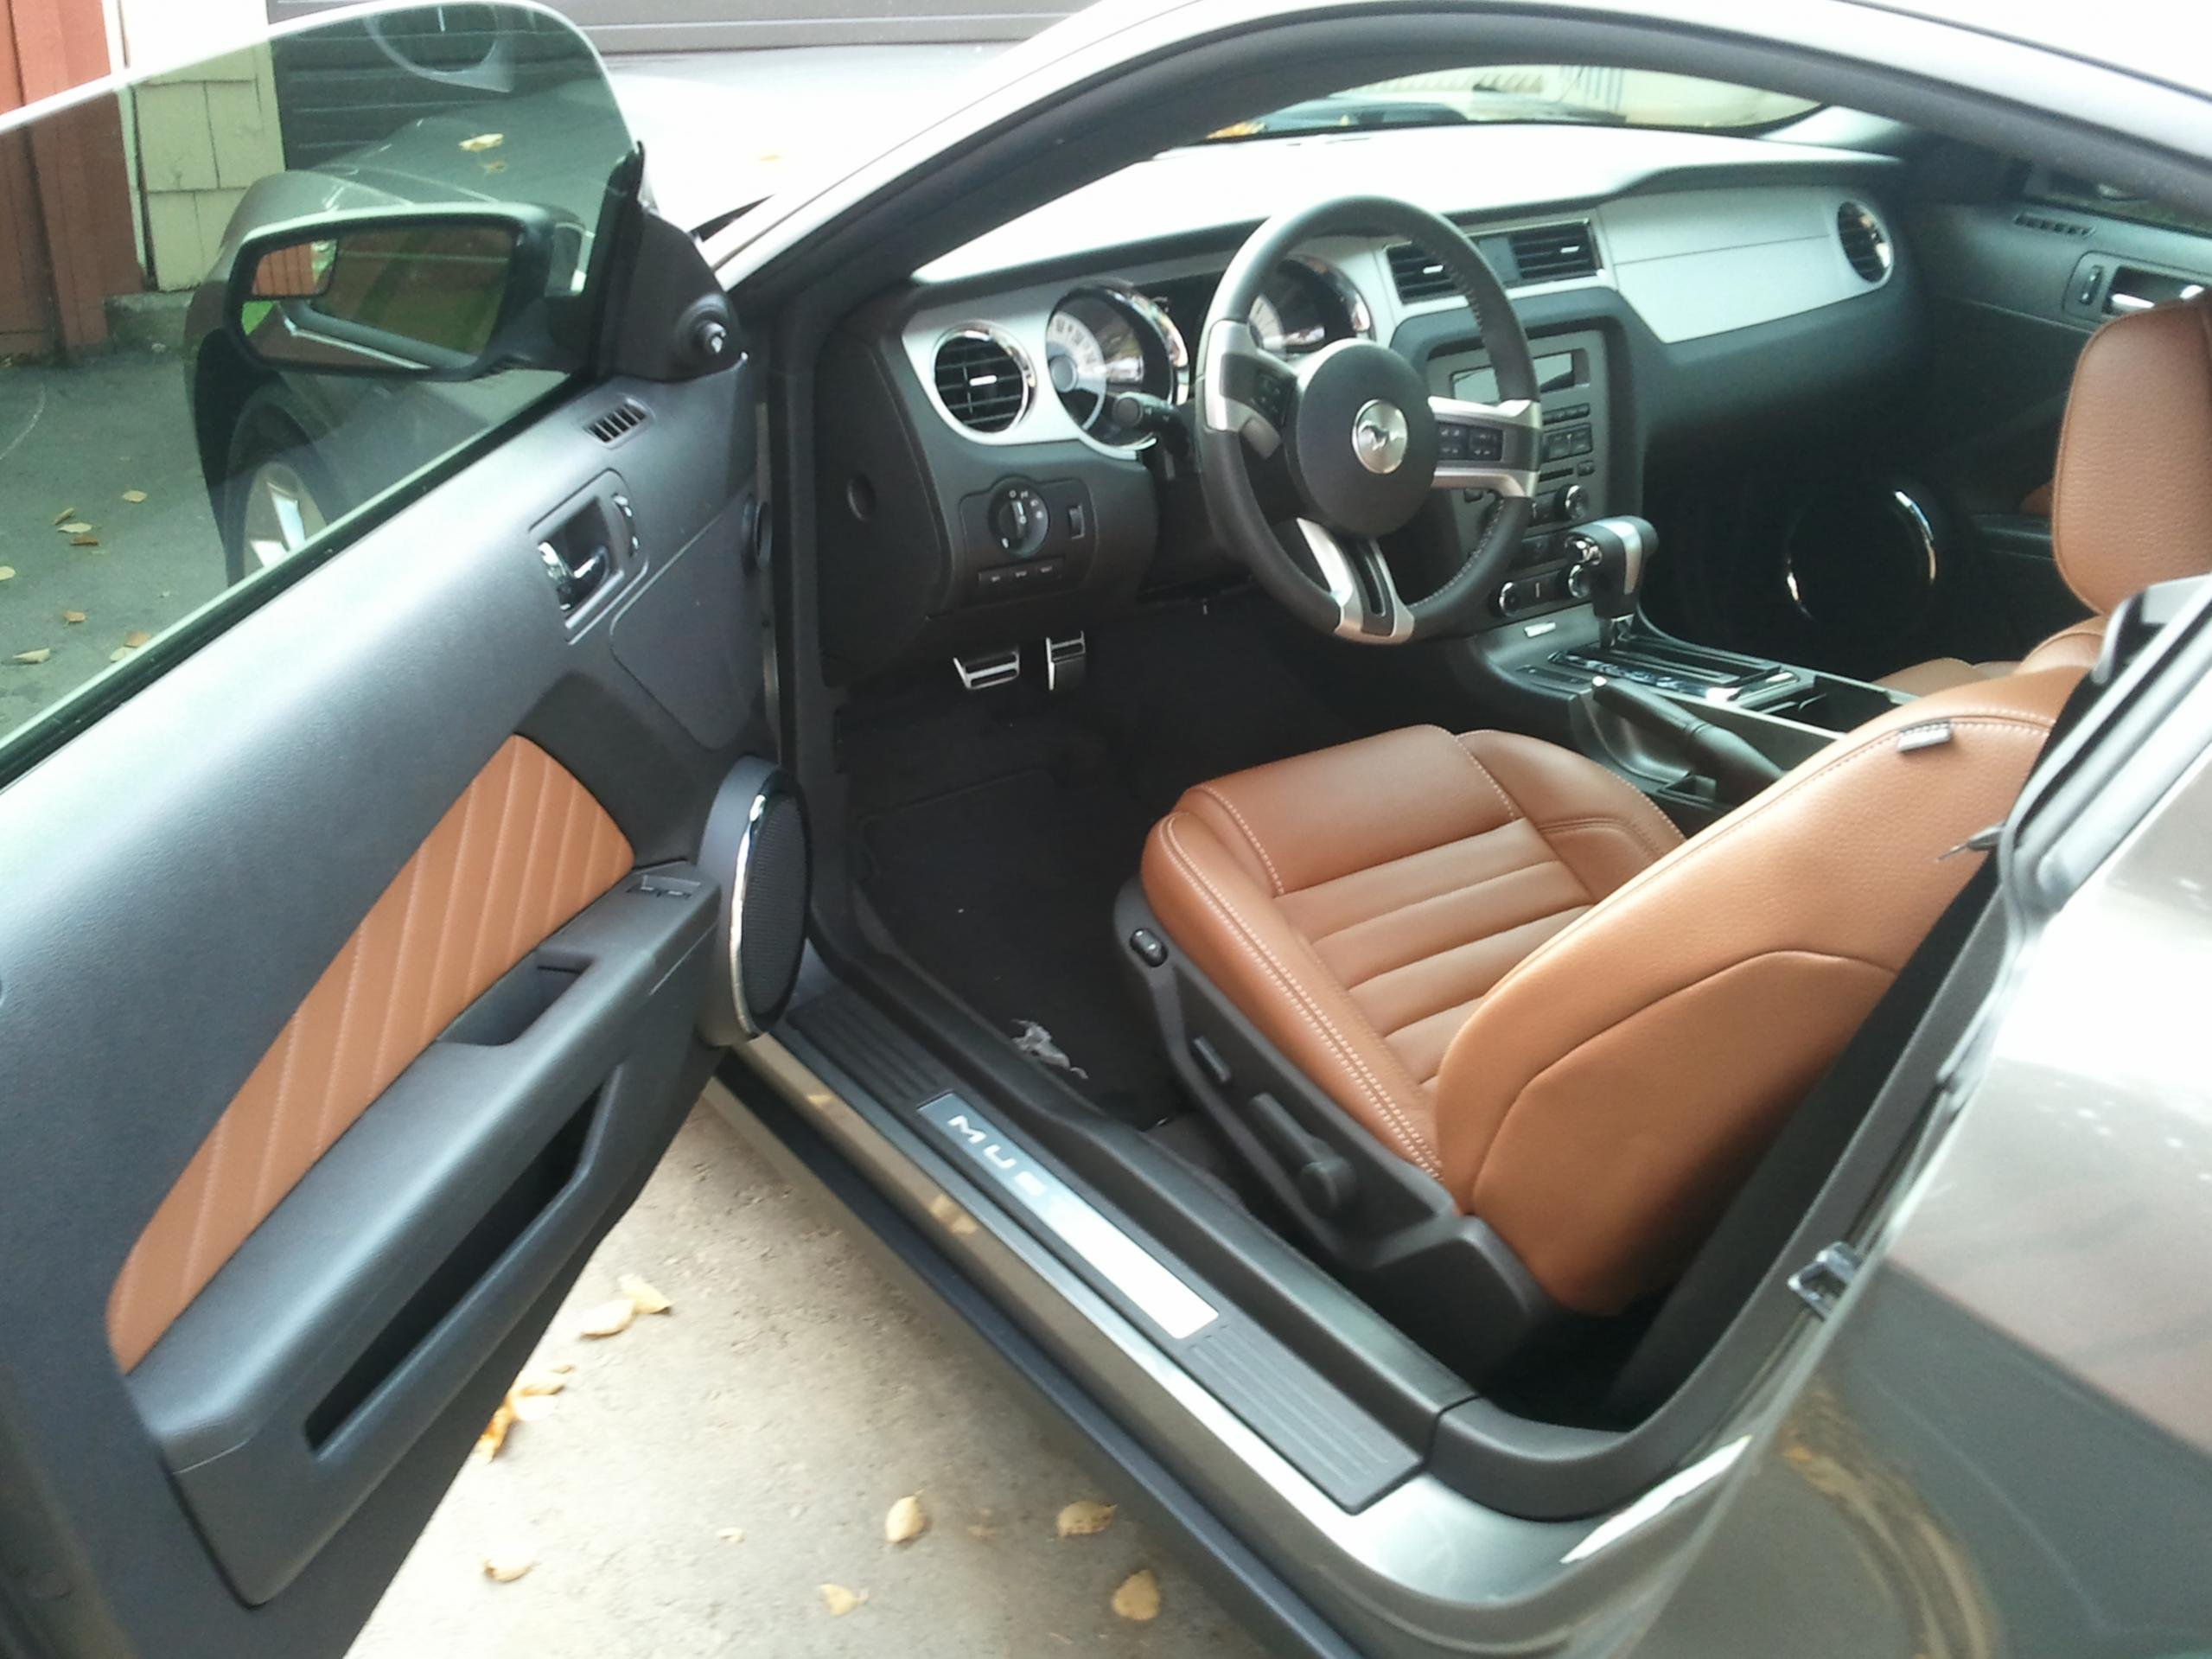 2011 Mustang Your Choice Of Leather Seats Page 6 Ford Mustang Forum